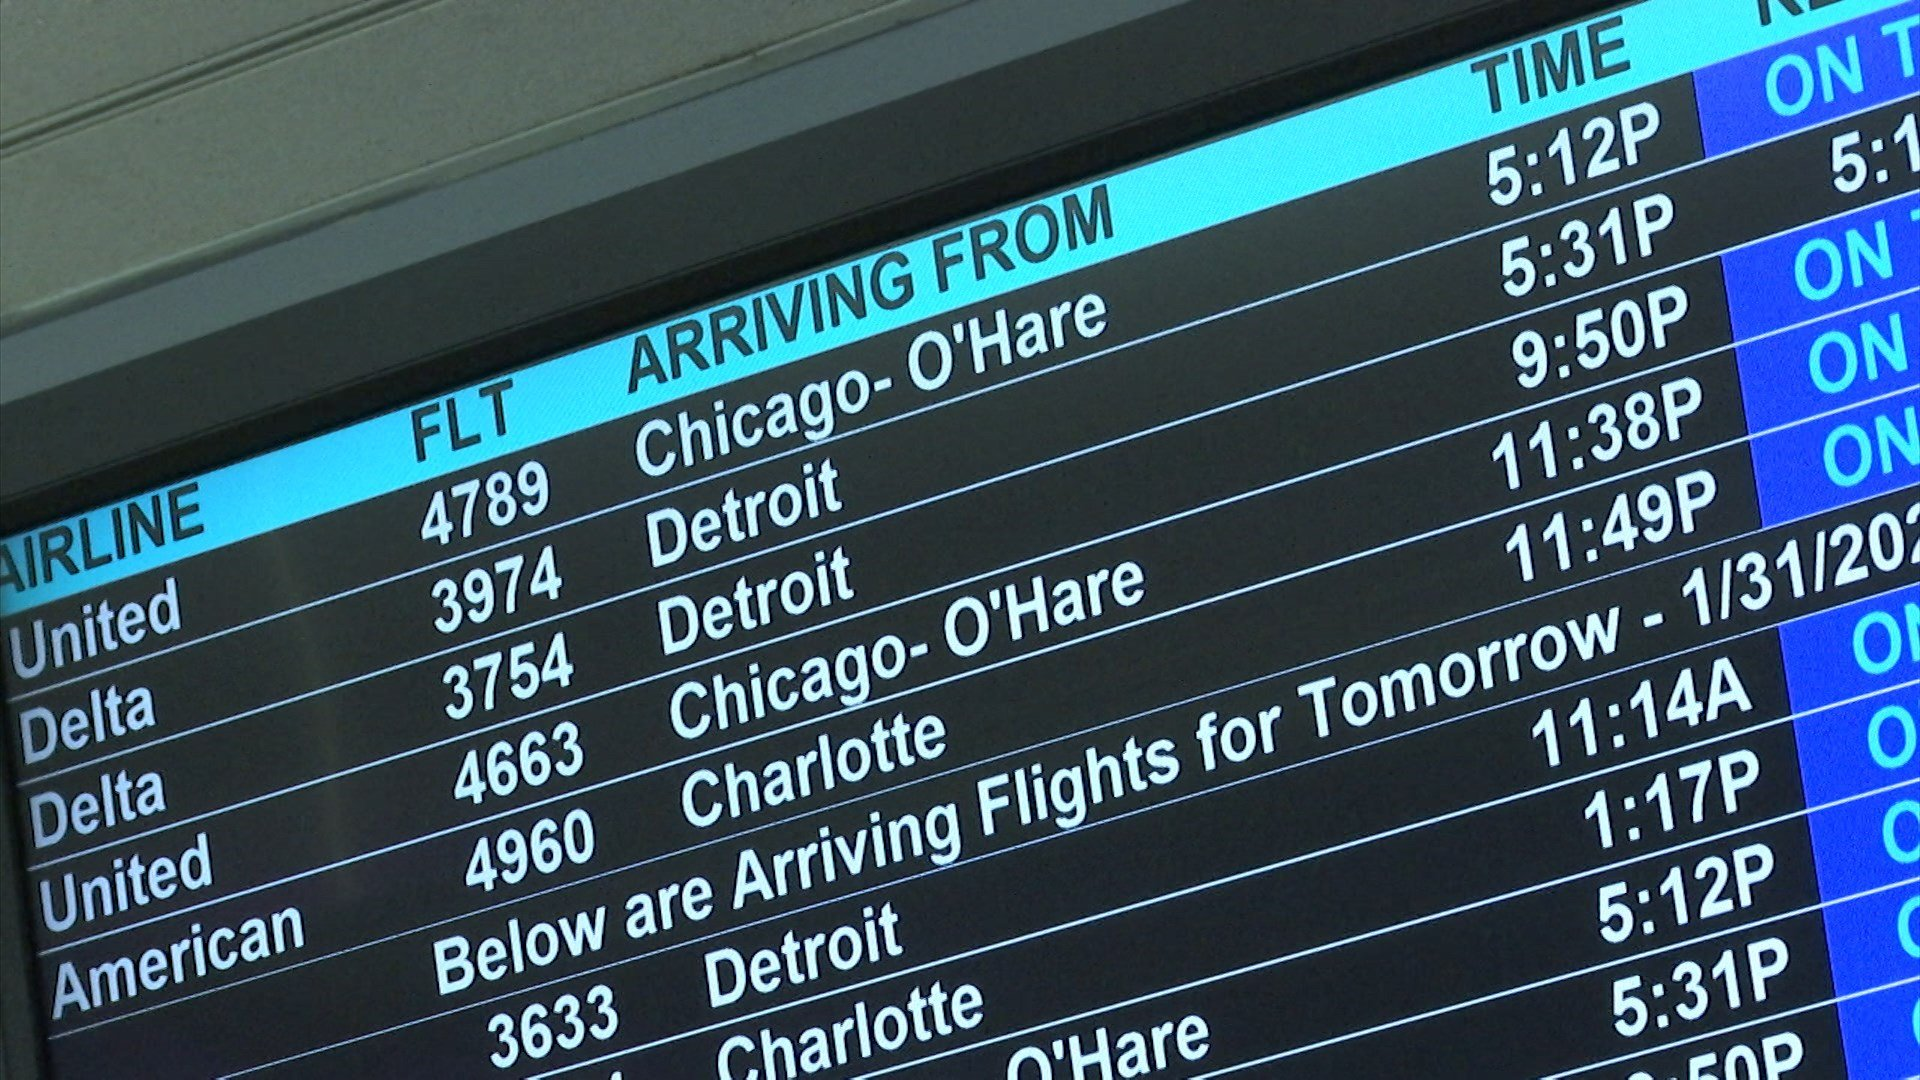 Local Travelers Share Concerns About The Corona Virus - Erie News ...